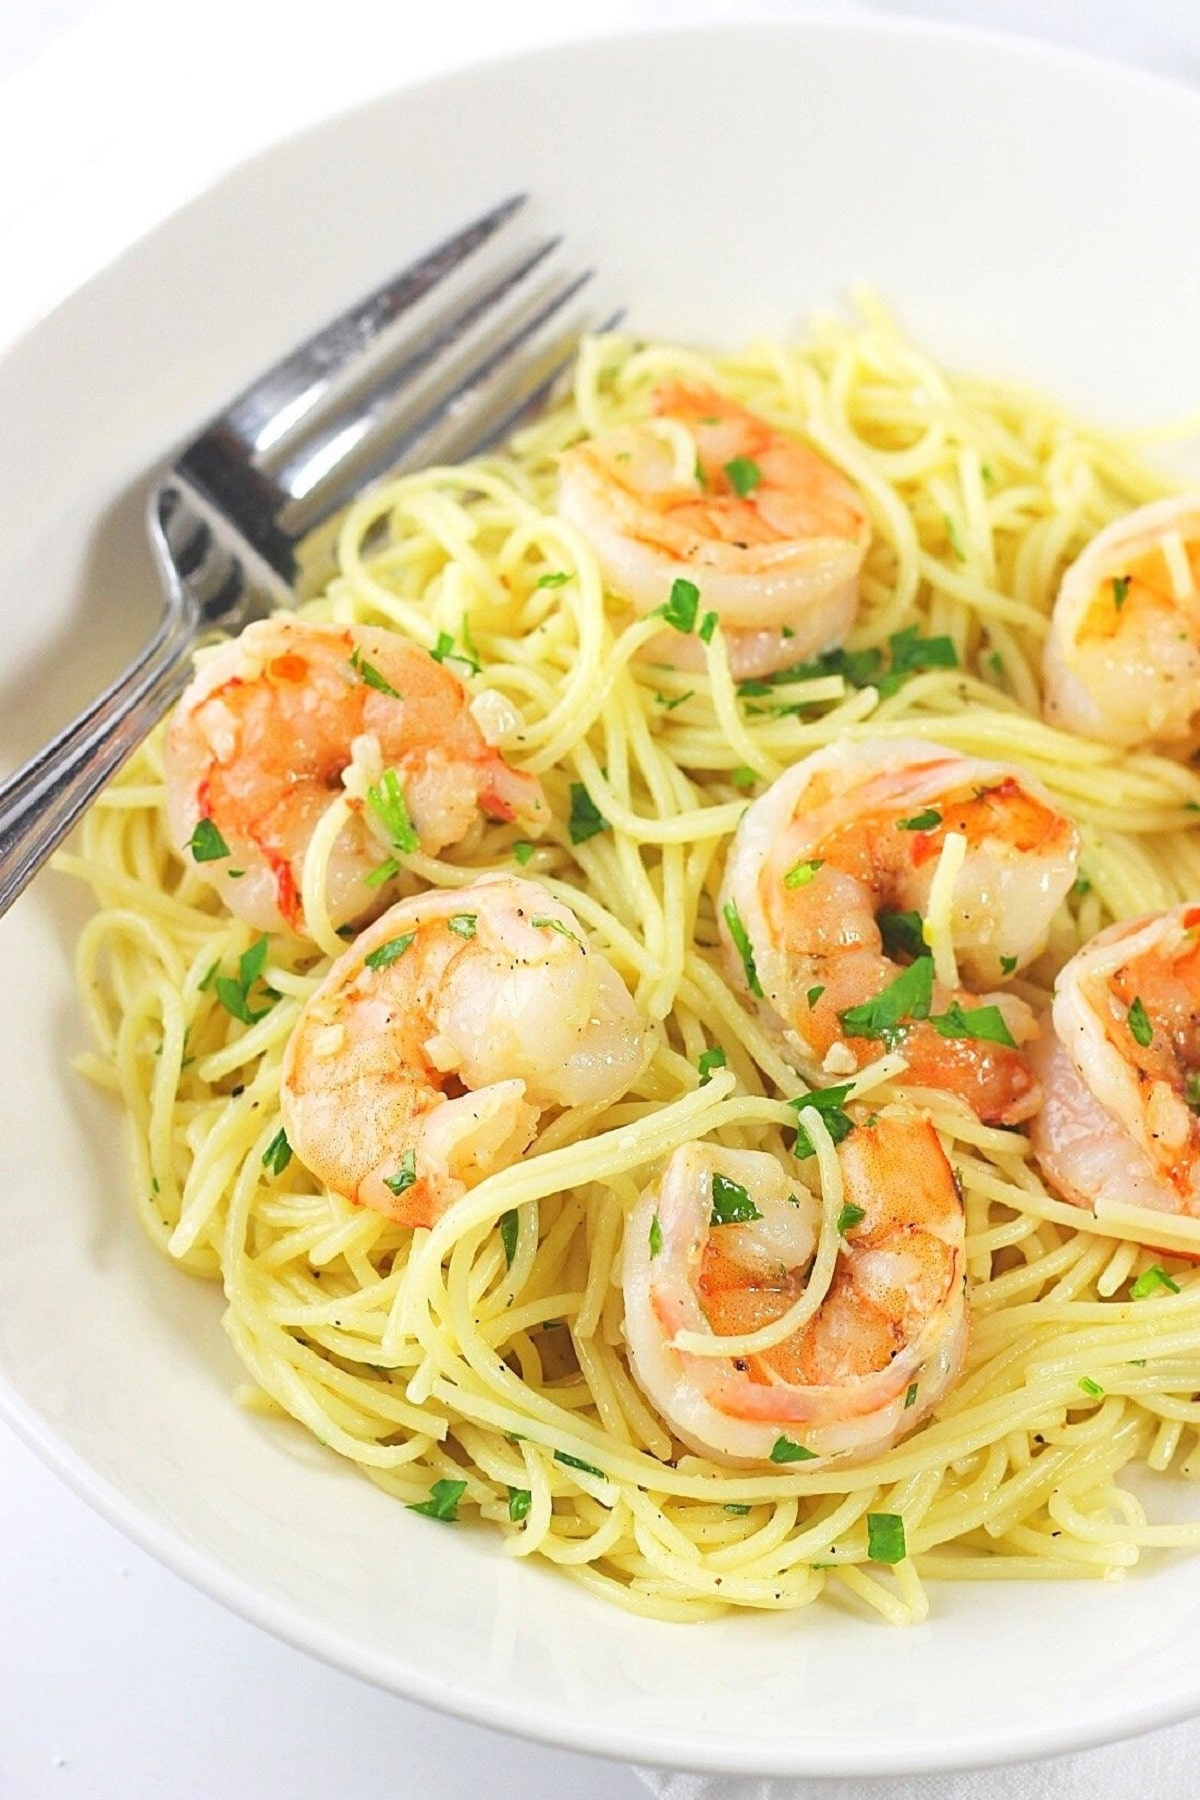 shrimp scampi with angel hair pasta in a white bowl with a fork